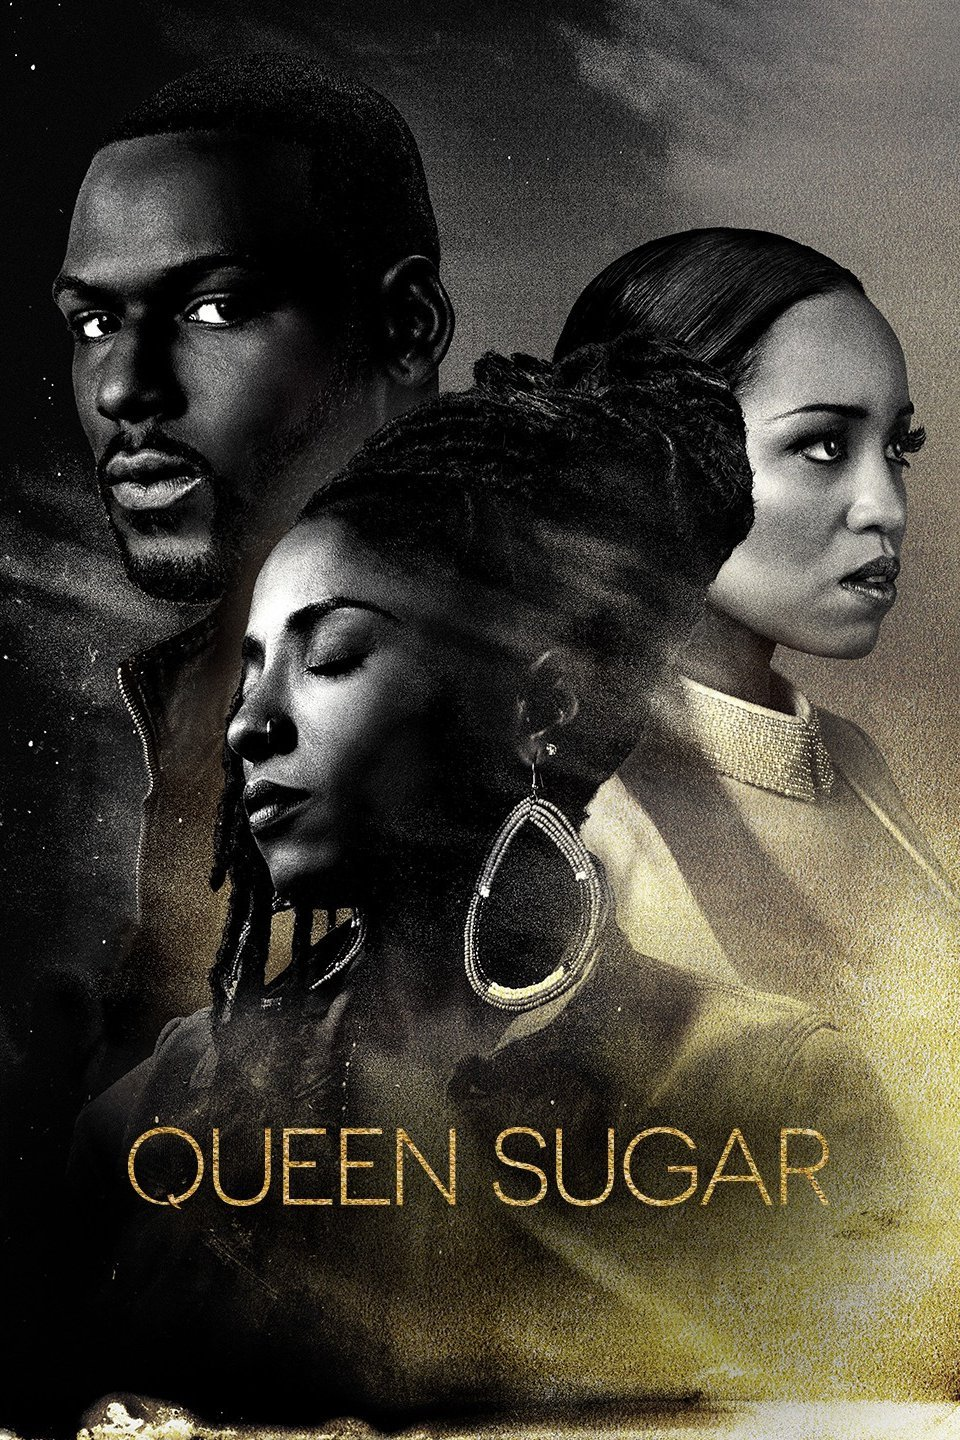 Queen Sugar Season 3 Episode 9 Download HDTV 480p 720p